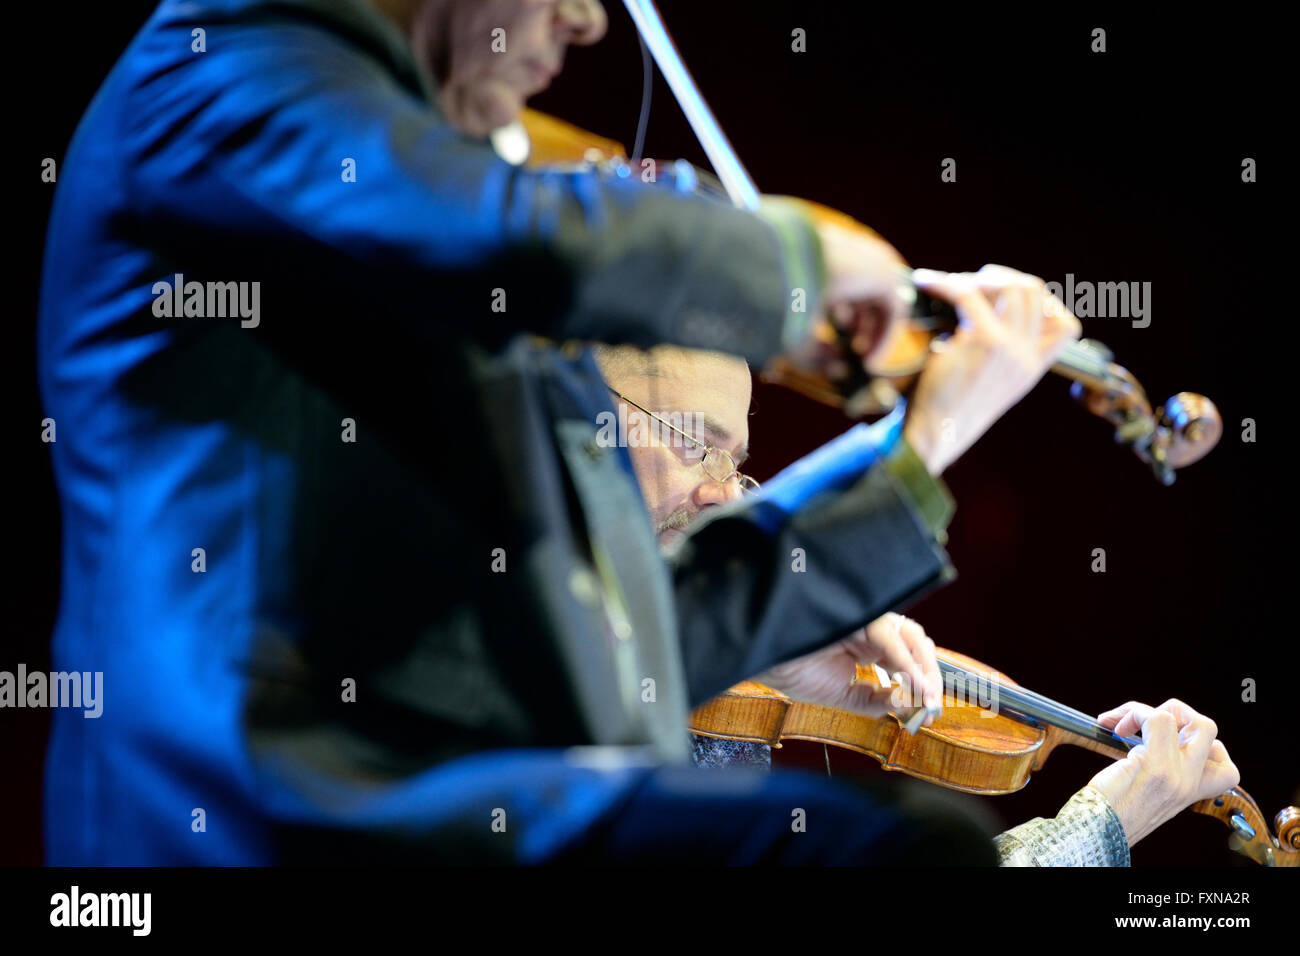 BARCELONA - MAY 31: Kronos Quartet (American string quartet), concert at Heineken Primavera Sound 2014 Festival - Stock Image